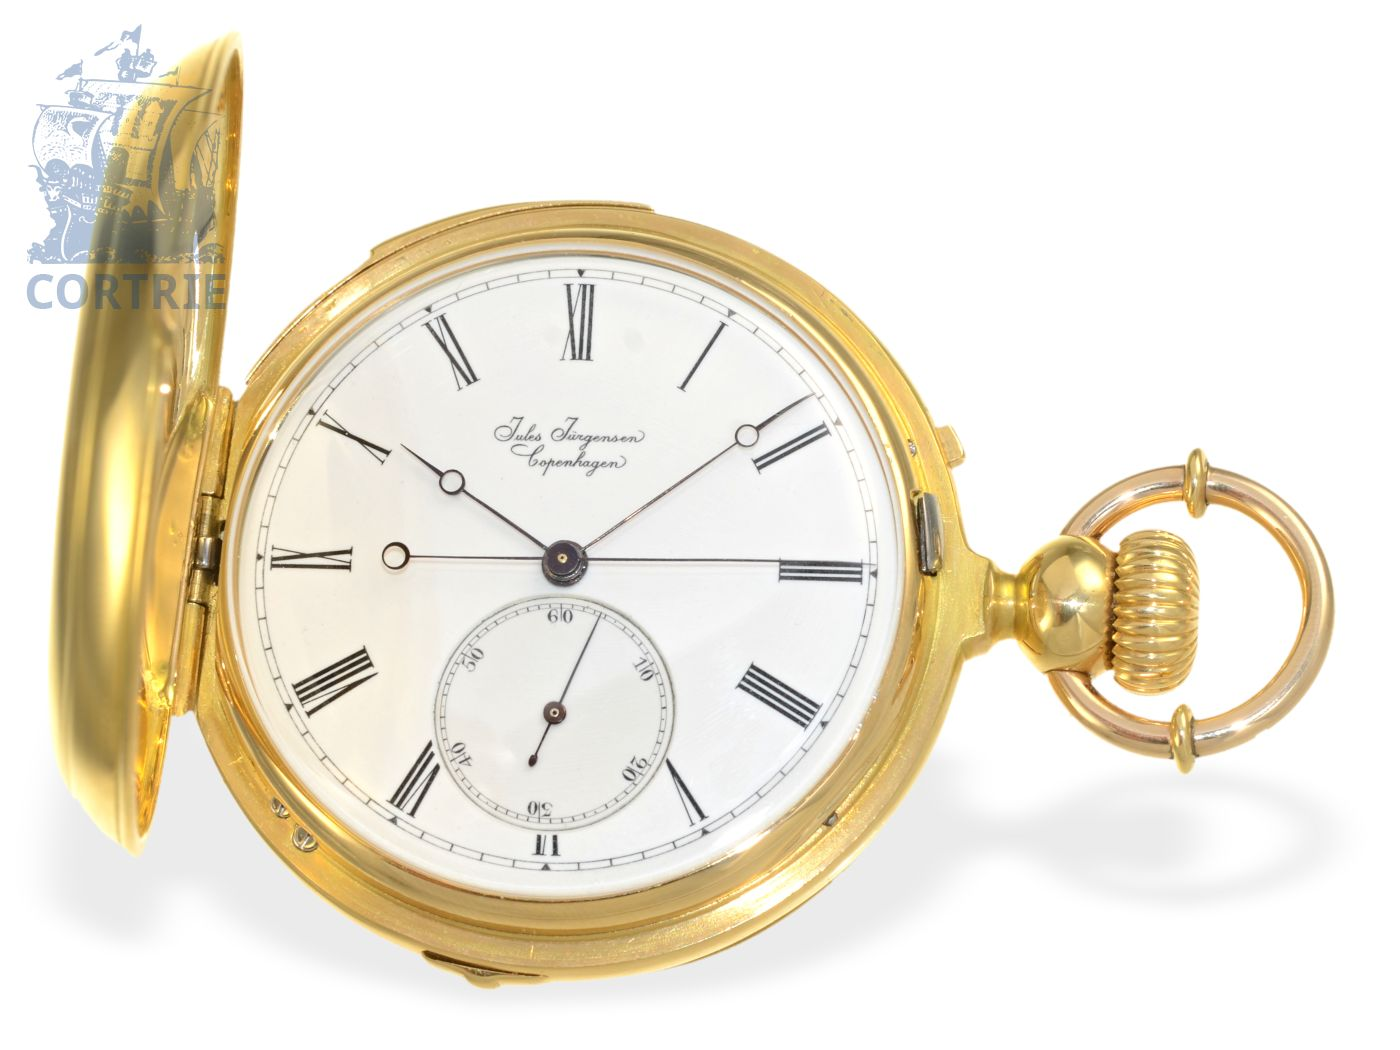 Pocket watch: Jules Jürgensen rarity, extremely early hunting case repeater, ca. 1856, rare combination with Seconde Morte-